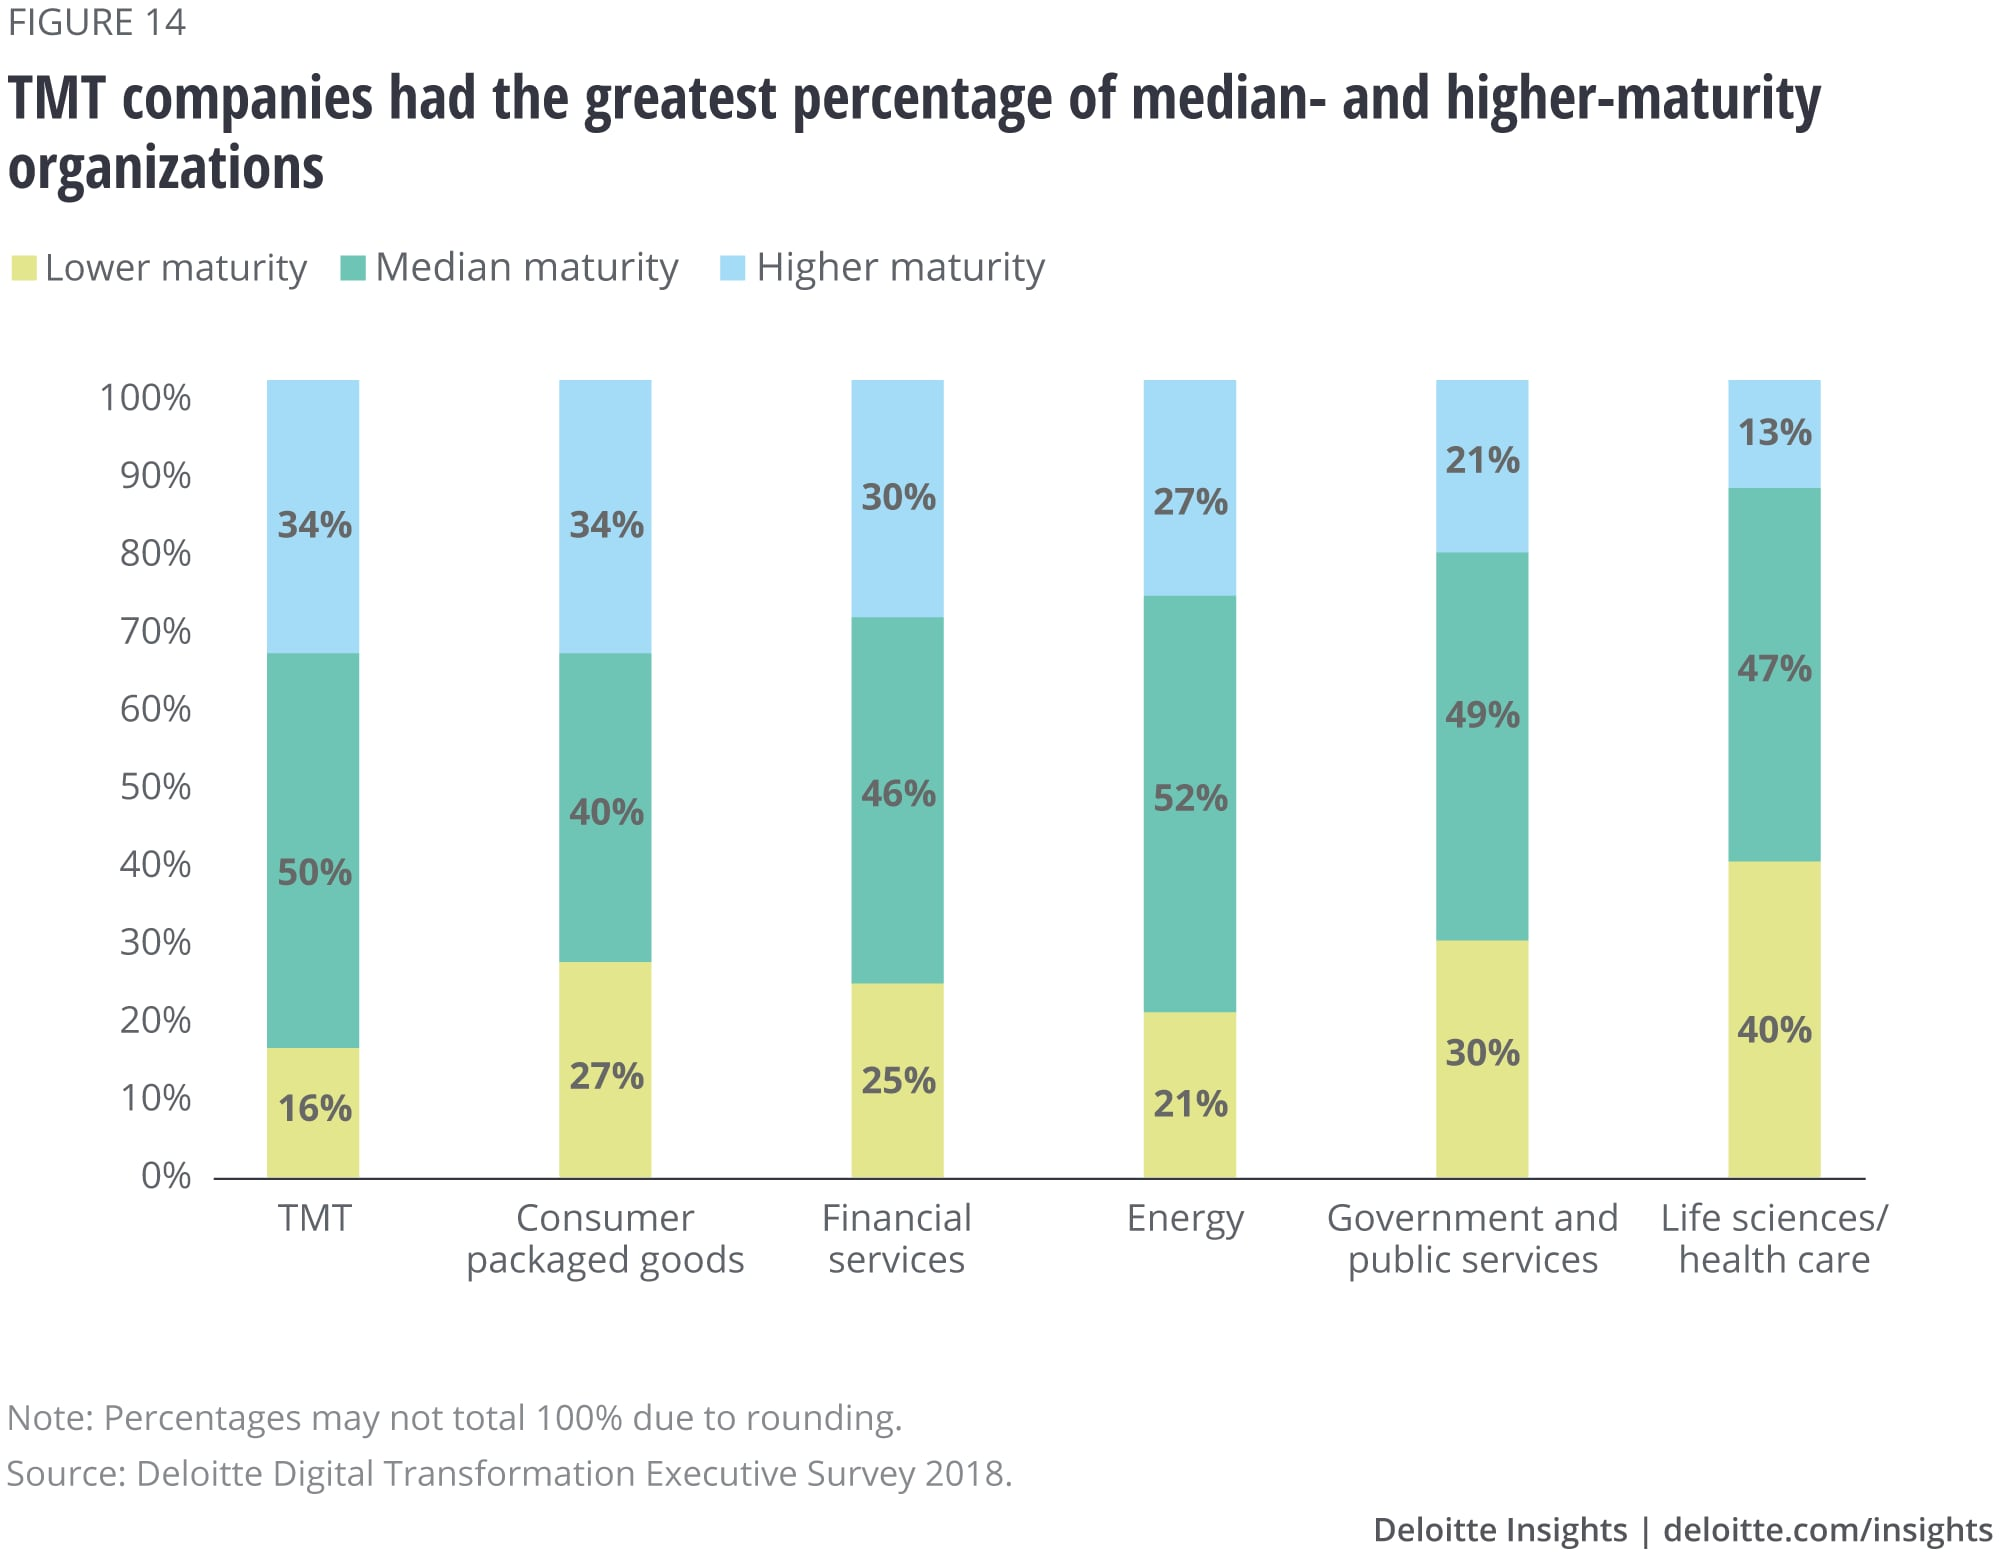 TMT companies had the greatest percentage of median- and higher-maturity organizations